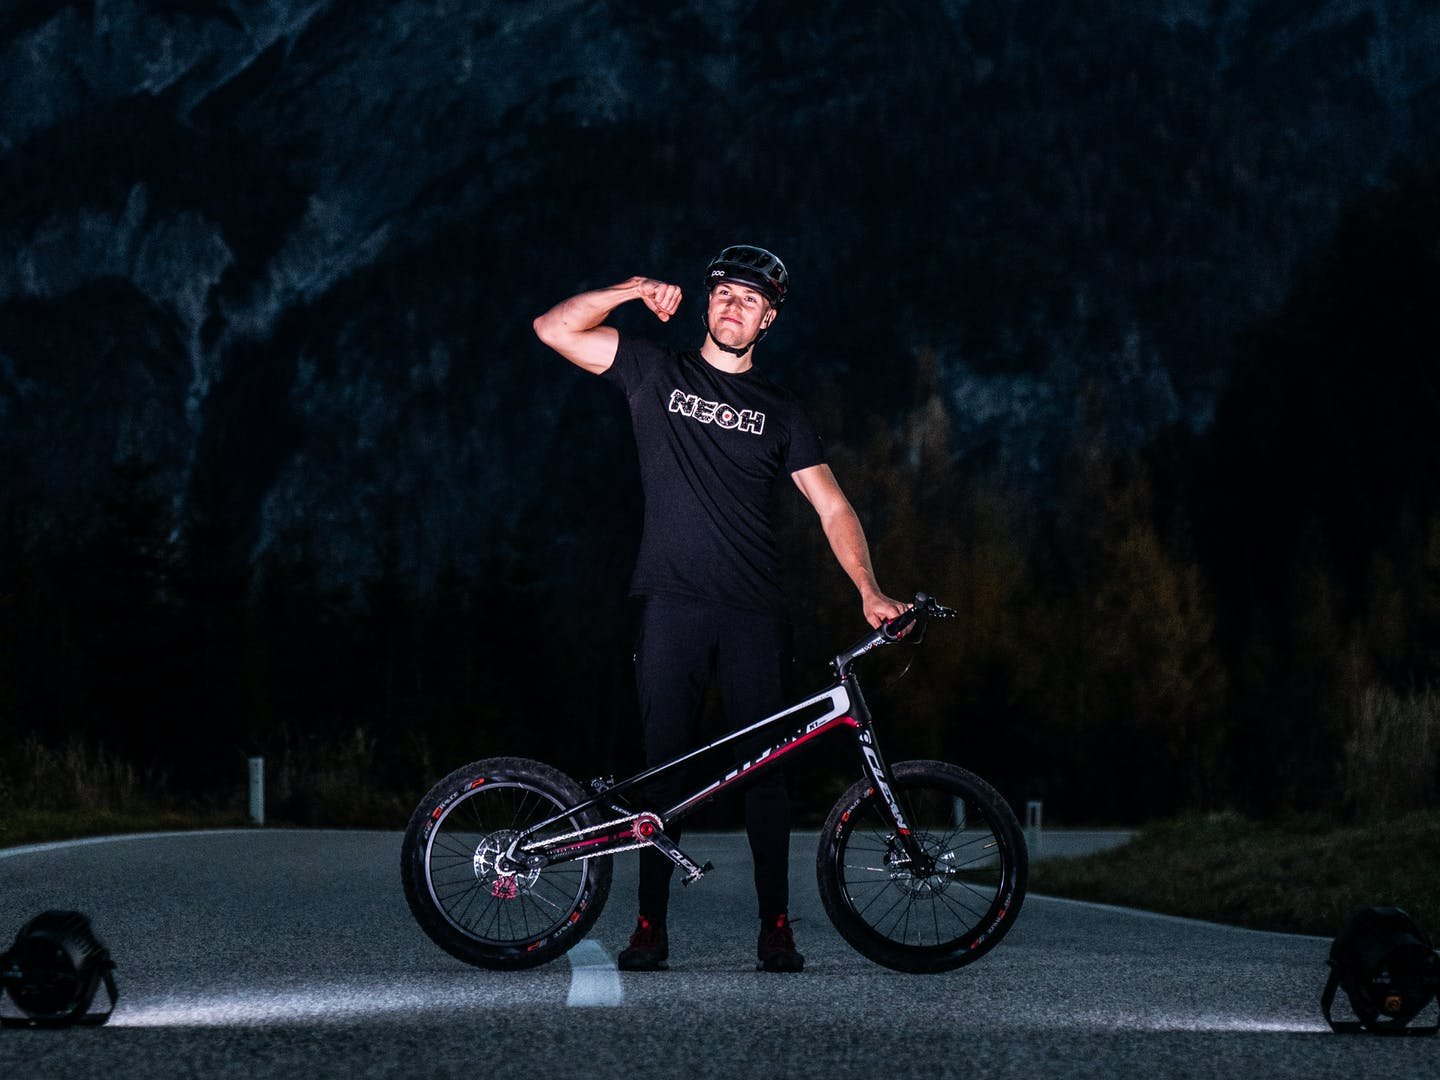 NEOH Athlet Dominic Grill / BMX 🚴🏻♂️